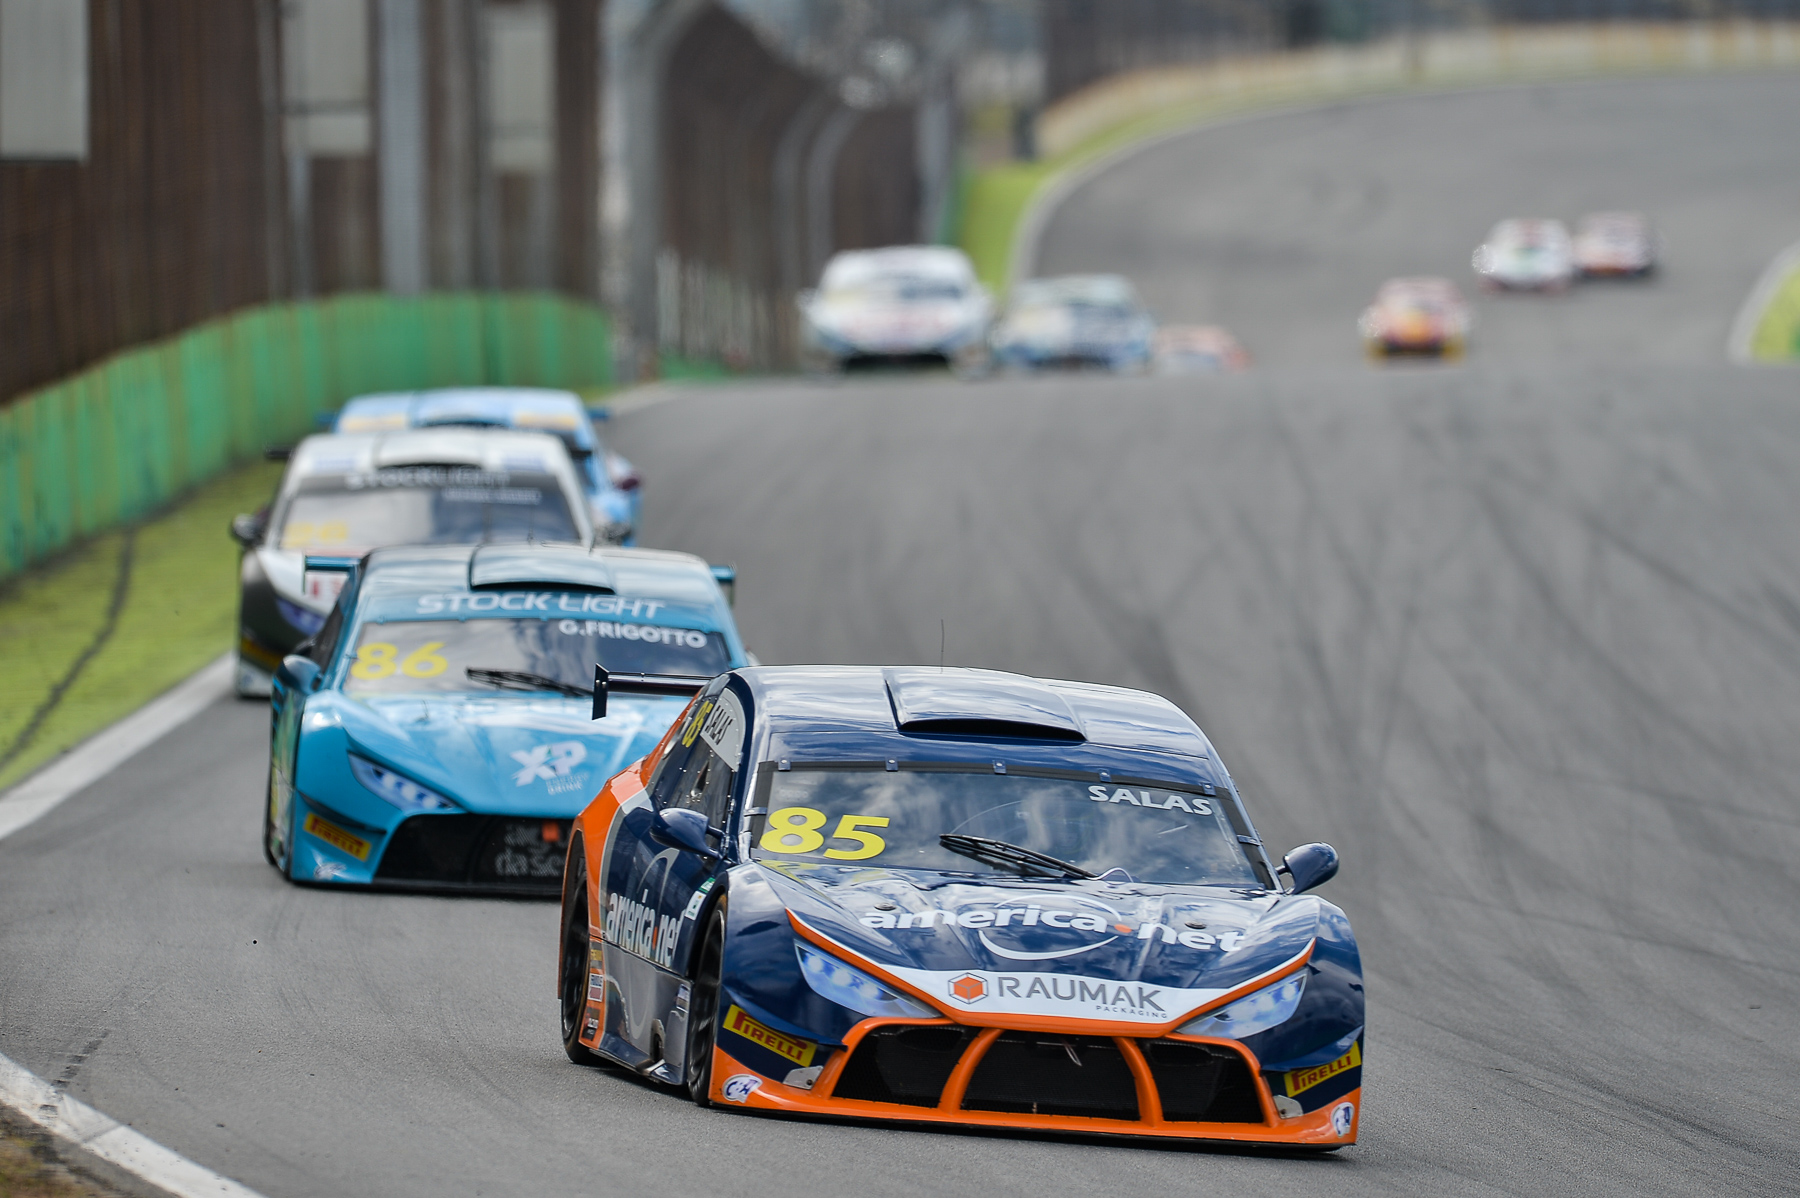 Photo of Stock Light – Em Interlagos, Salas vence mais uma na temporada